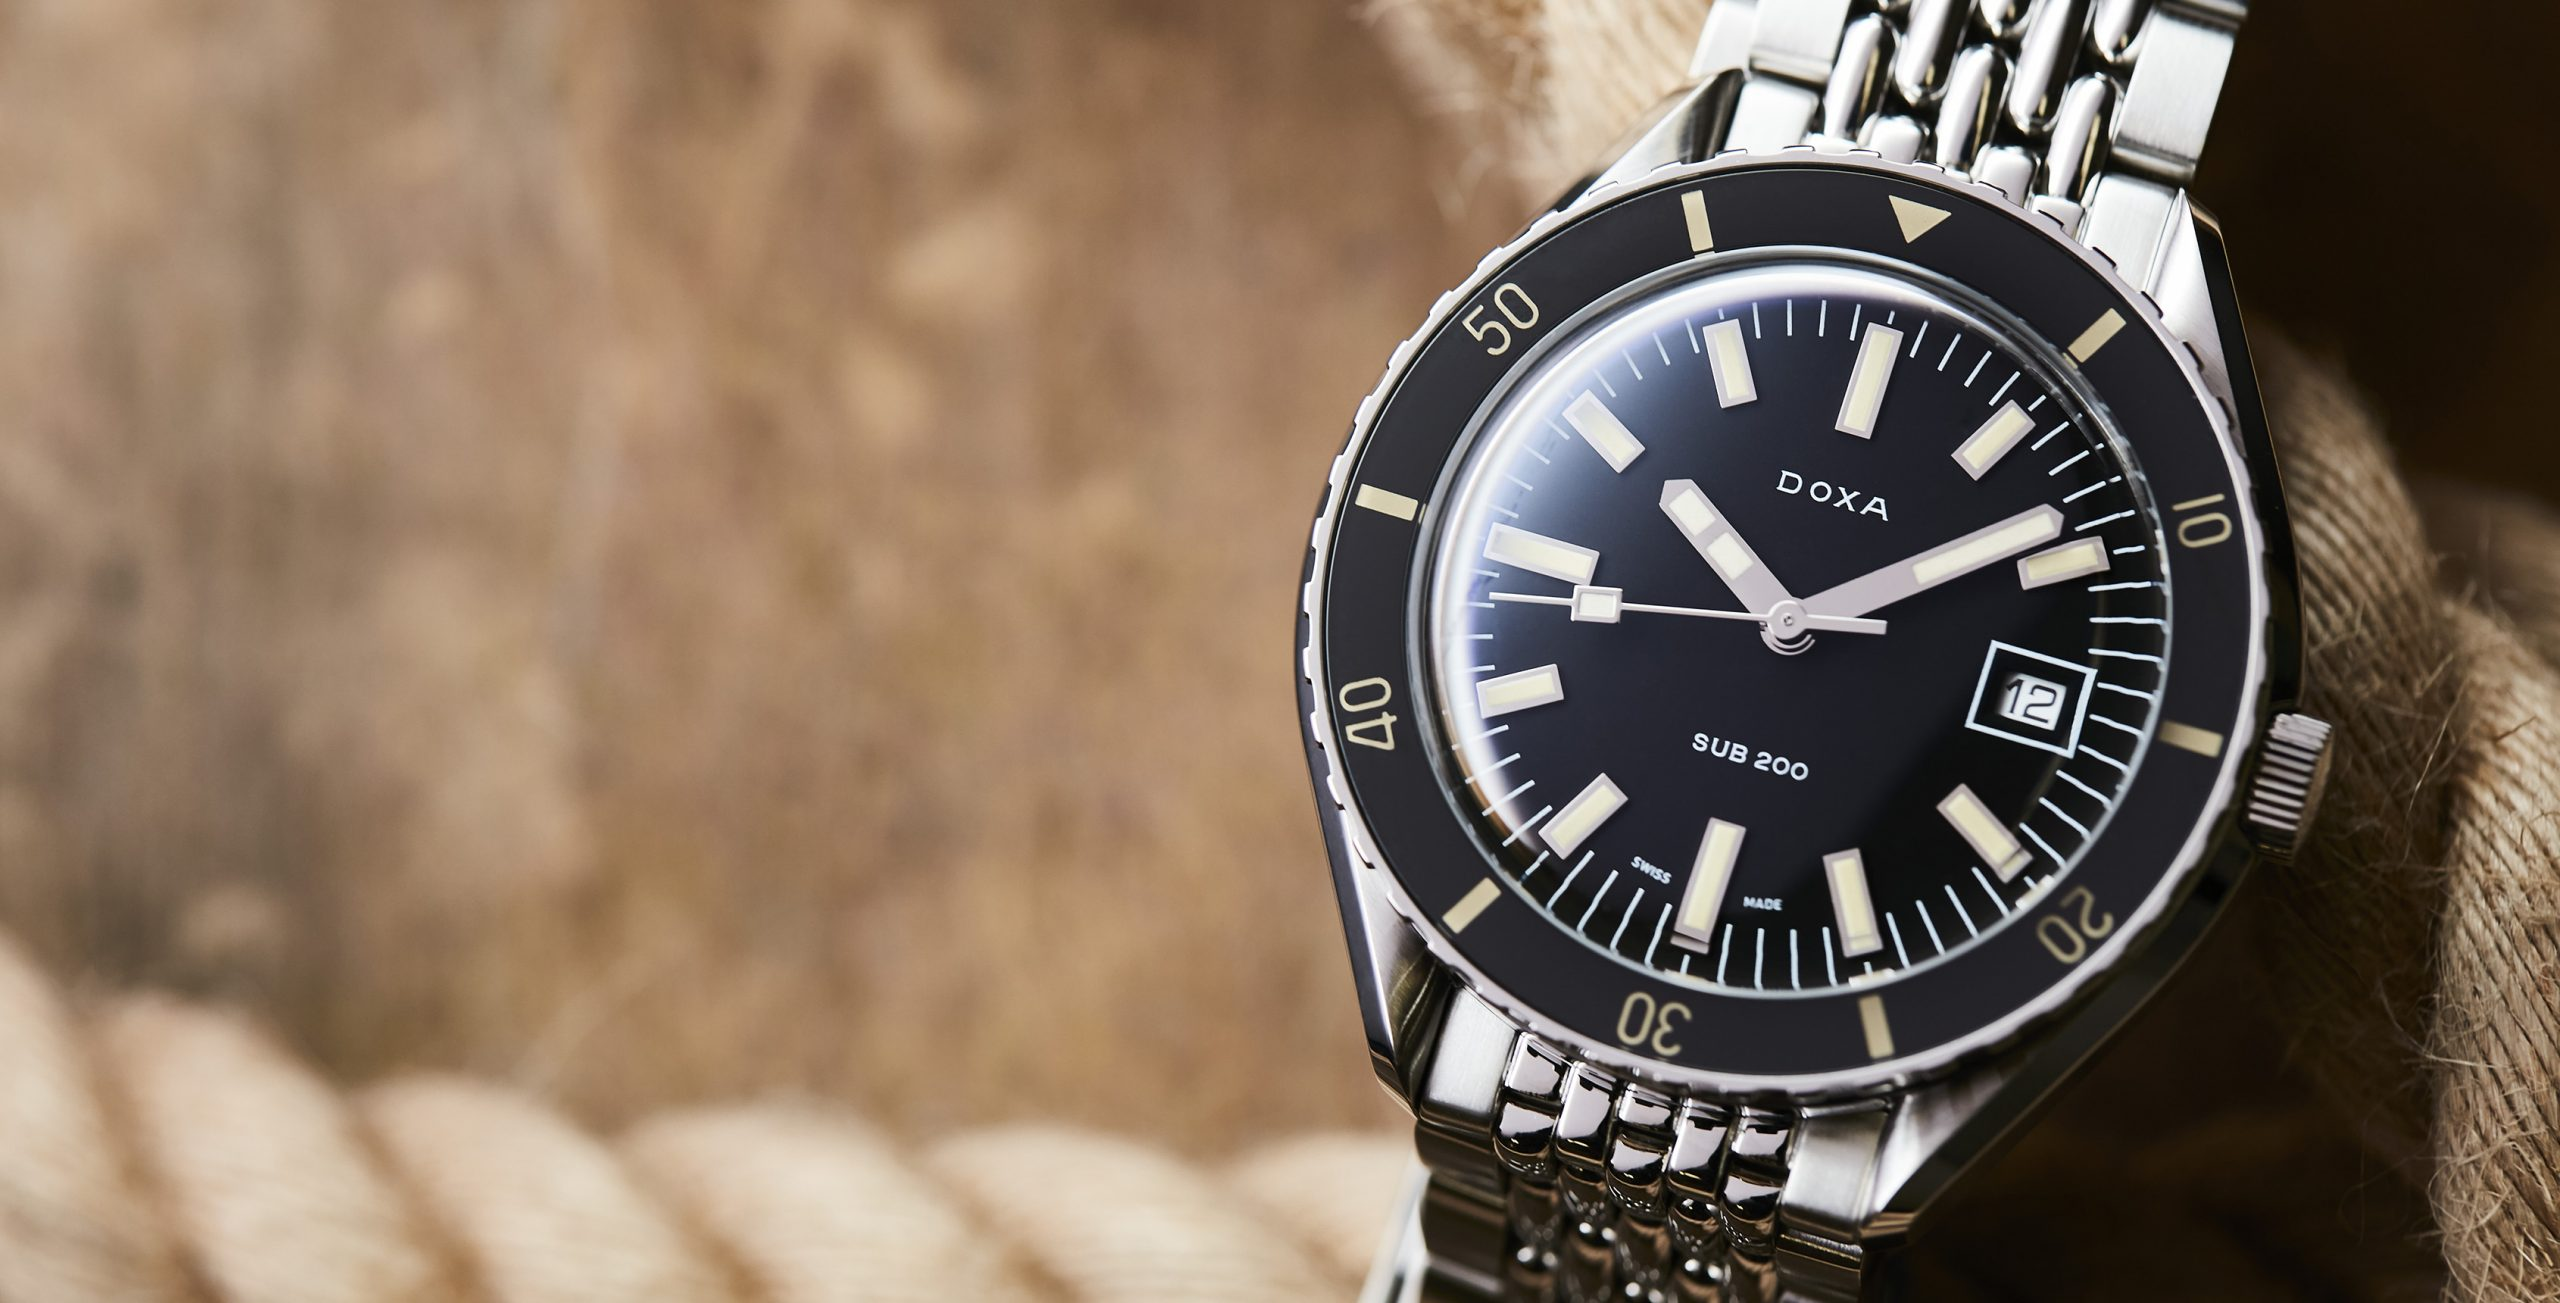 An owner's guide to the pros, cons and timeless style of the DOXA SUB 200